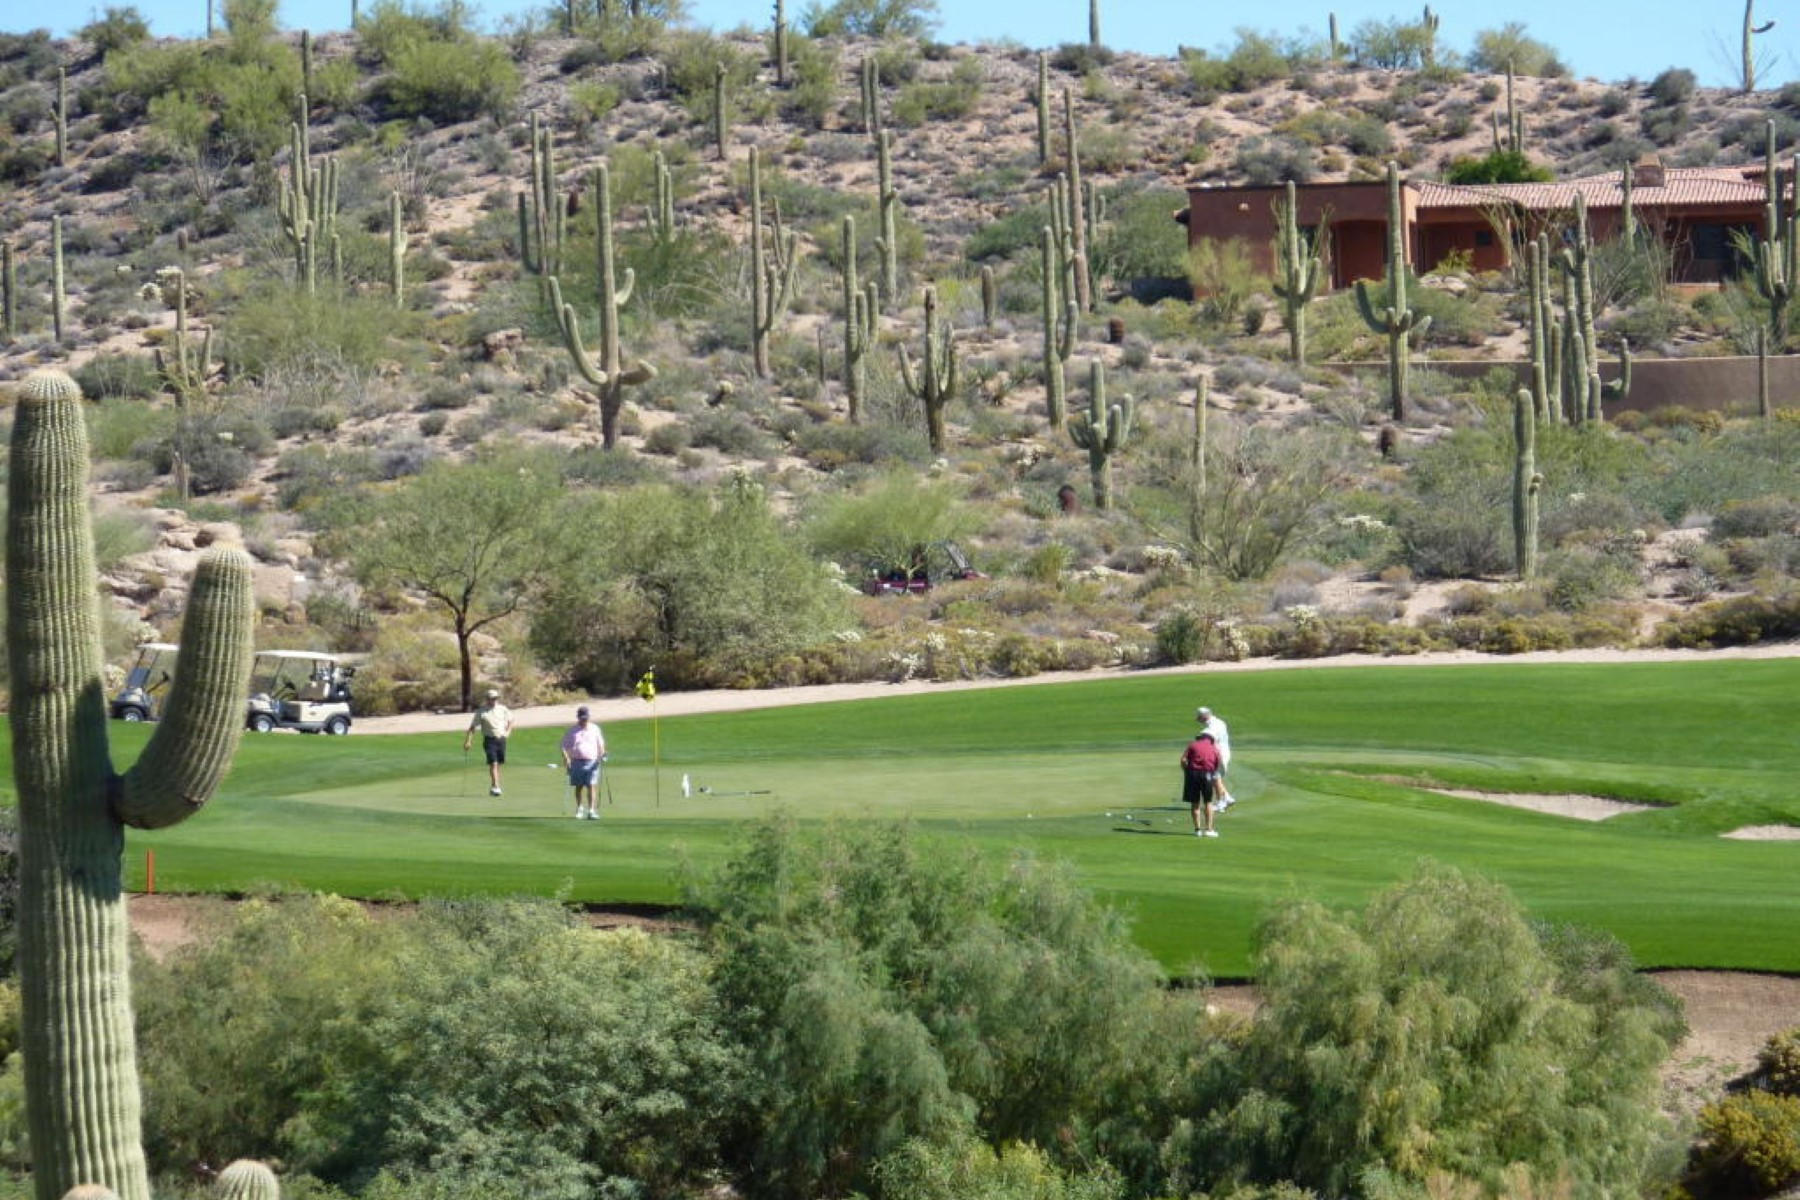 Land for Sale at One of the best premier VIEW lots 41413 N 95th St 259 Scottsdale, Arizona, 85262 United States